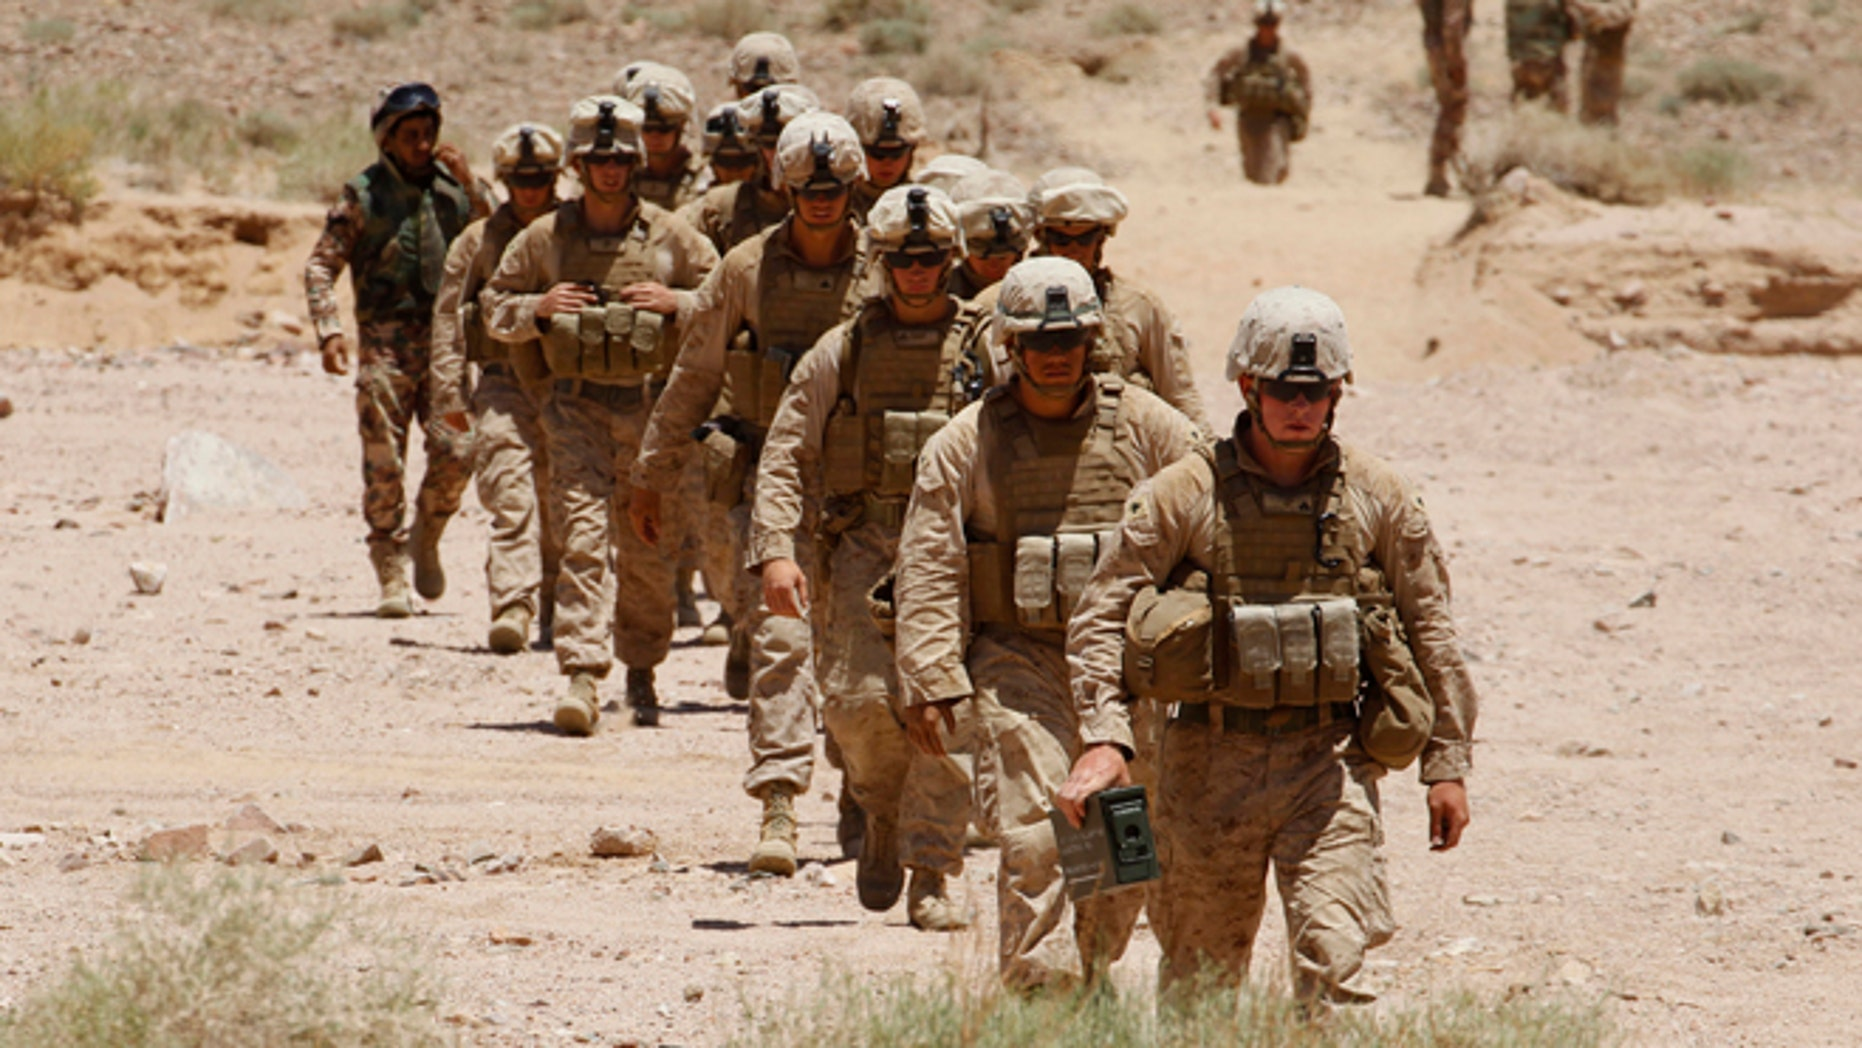 This June 16, 2013 file photo shows U.S. Marines from 26th Marine Expeditionary Unit in Jordan.